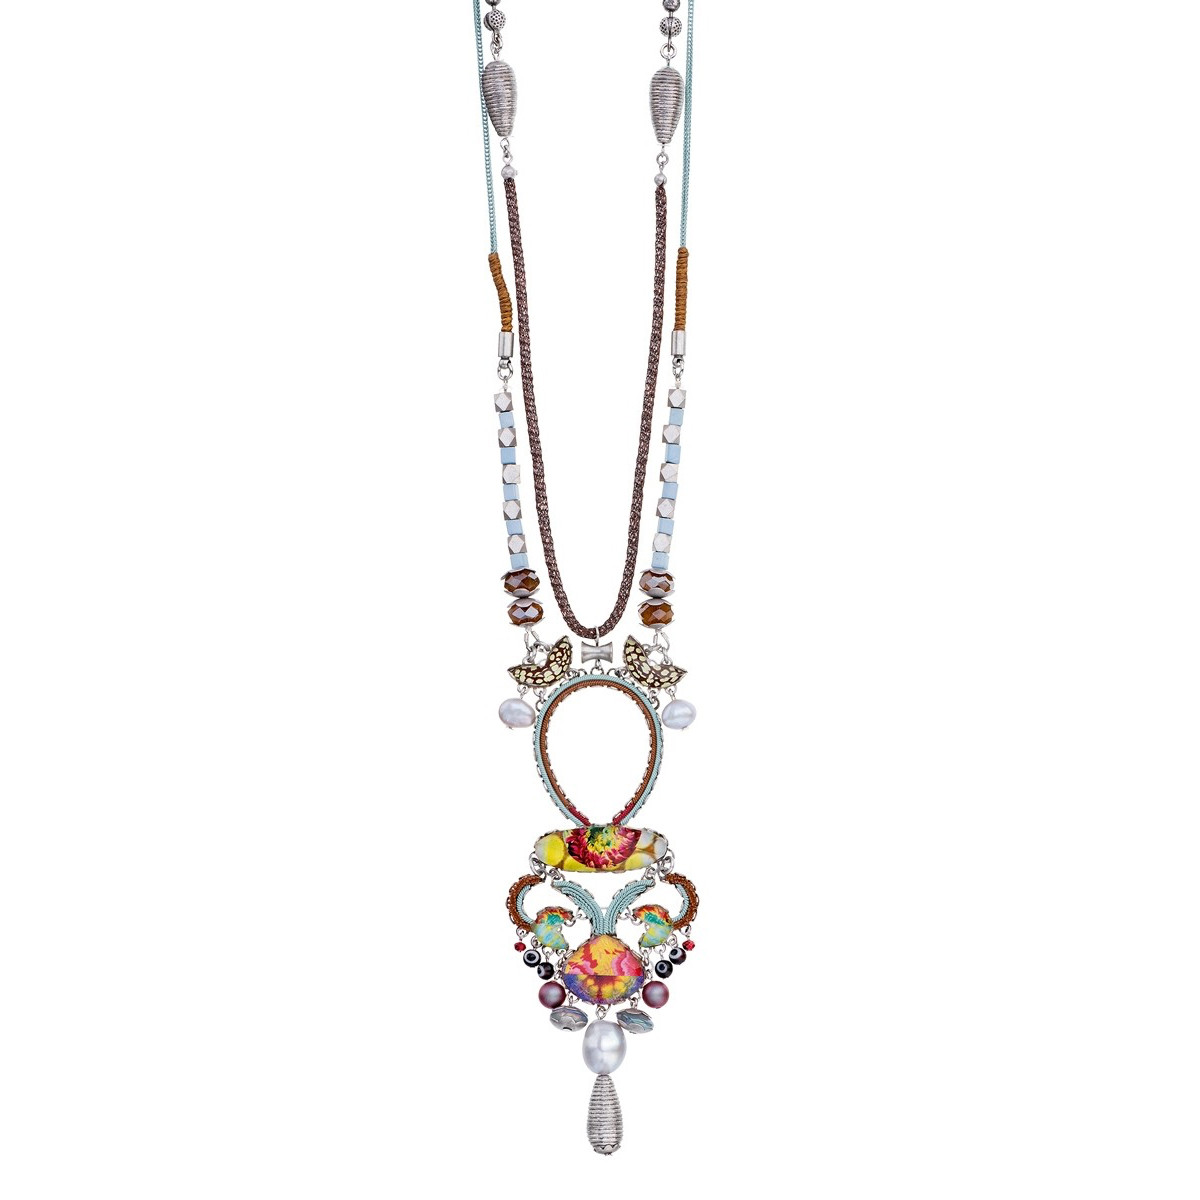 Ayala Bar Unforgettable Fire Cheeky Peach Necklace - New Arrival